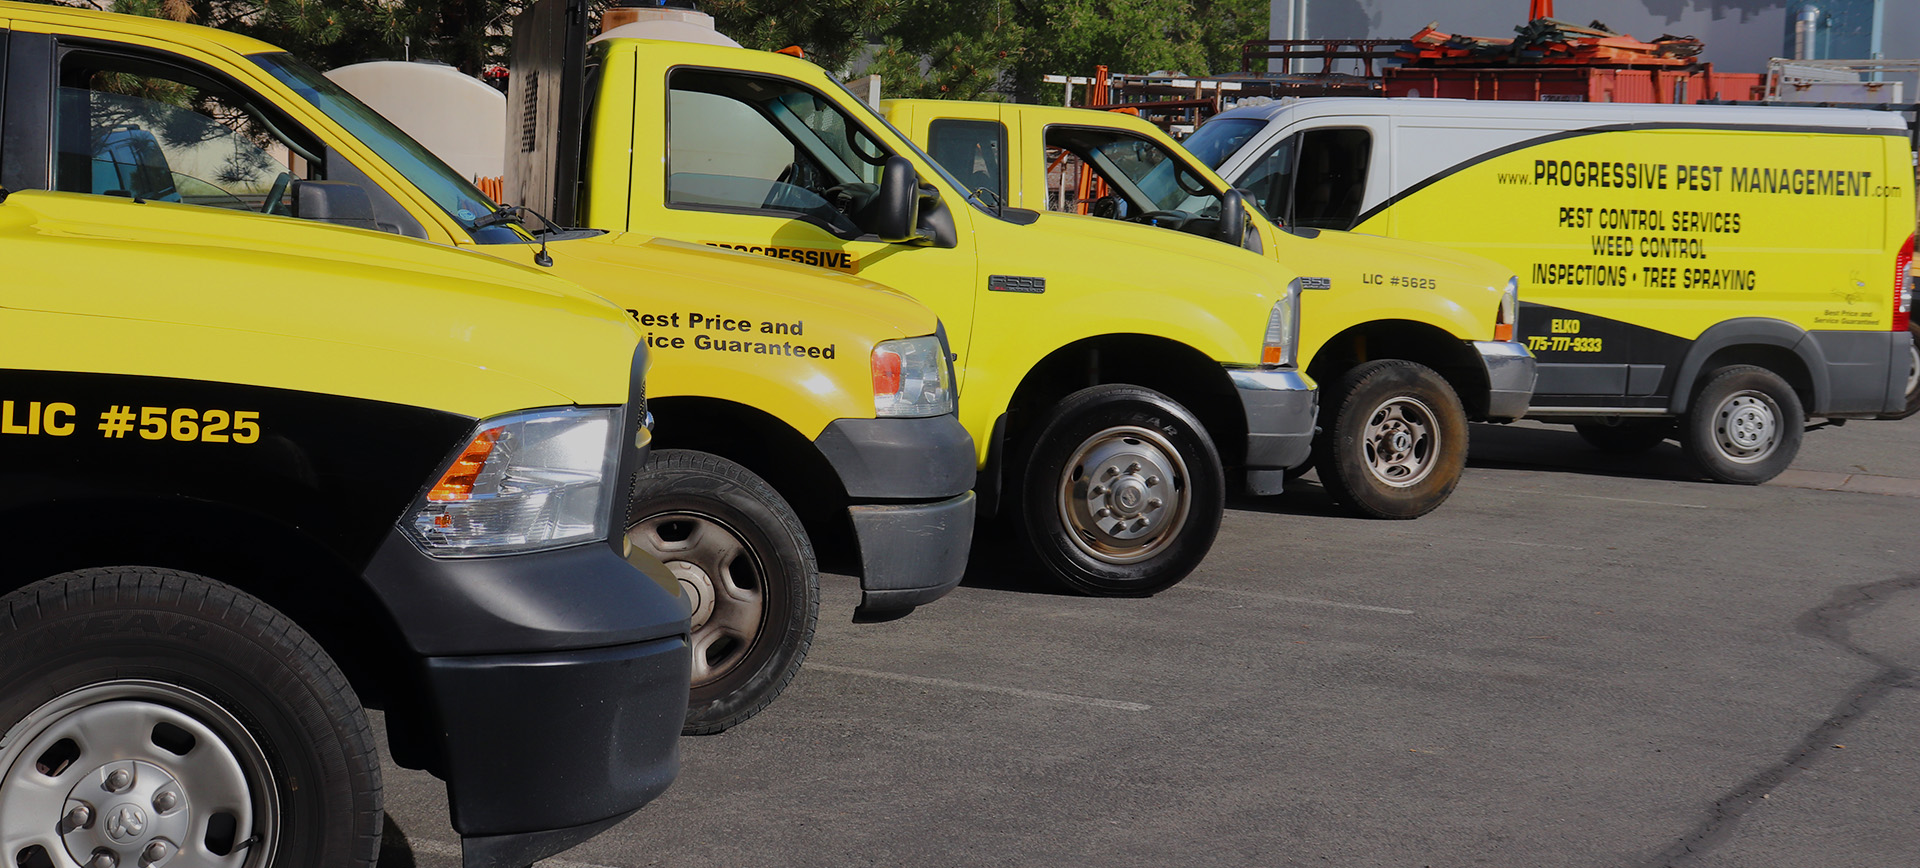 Progressive Pest Management - Fleet